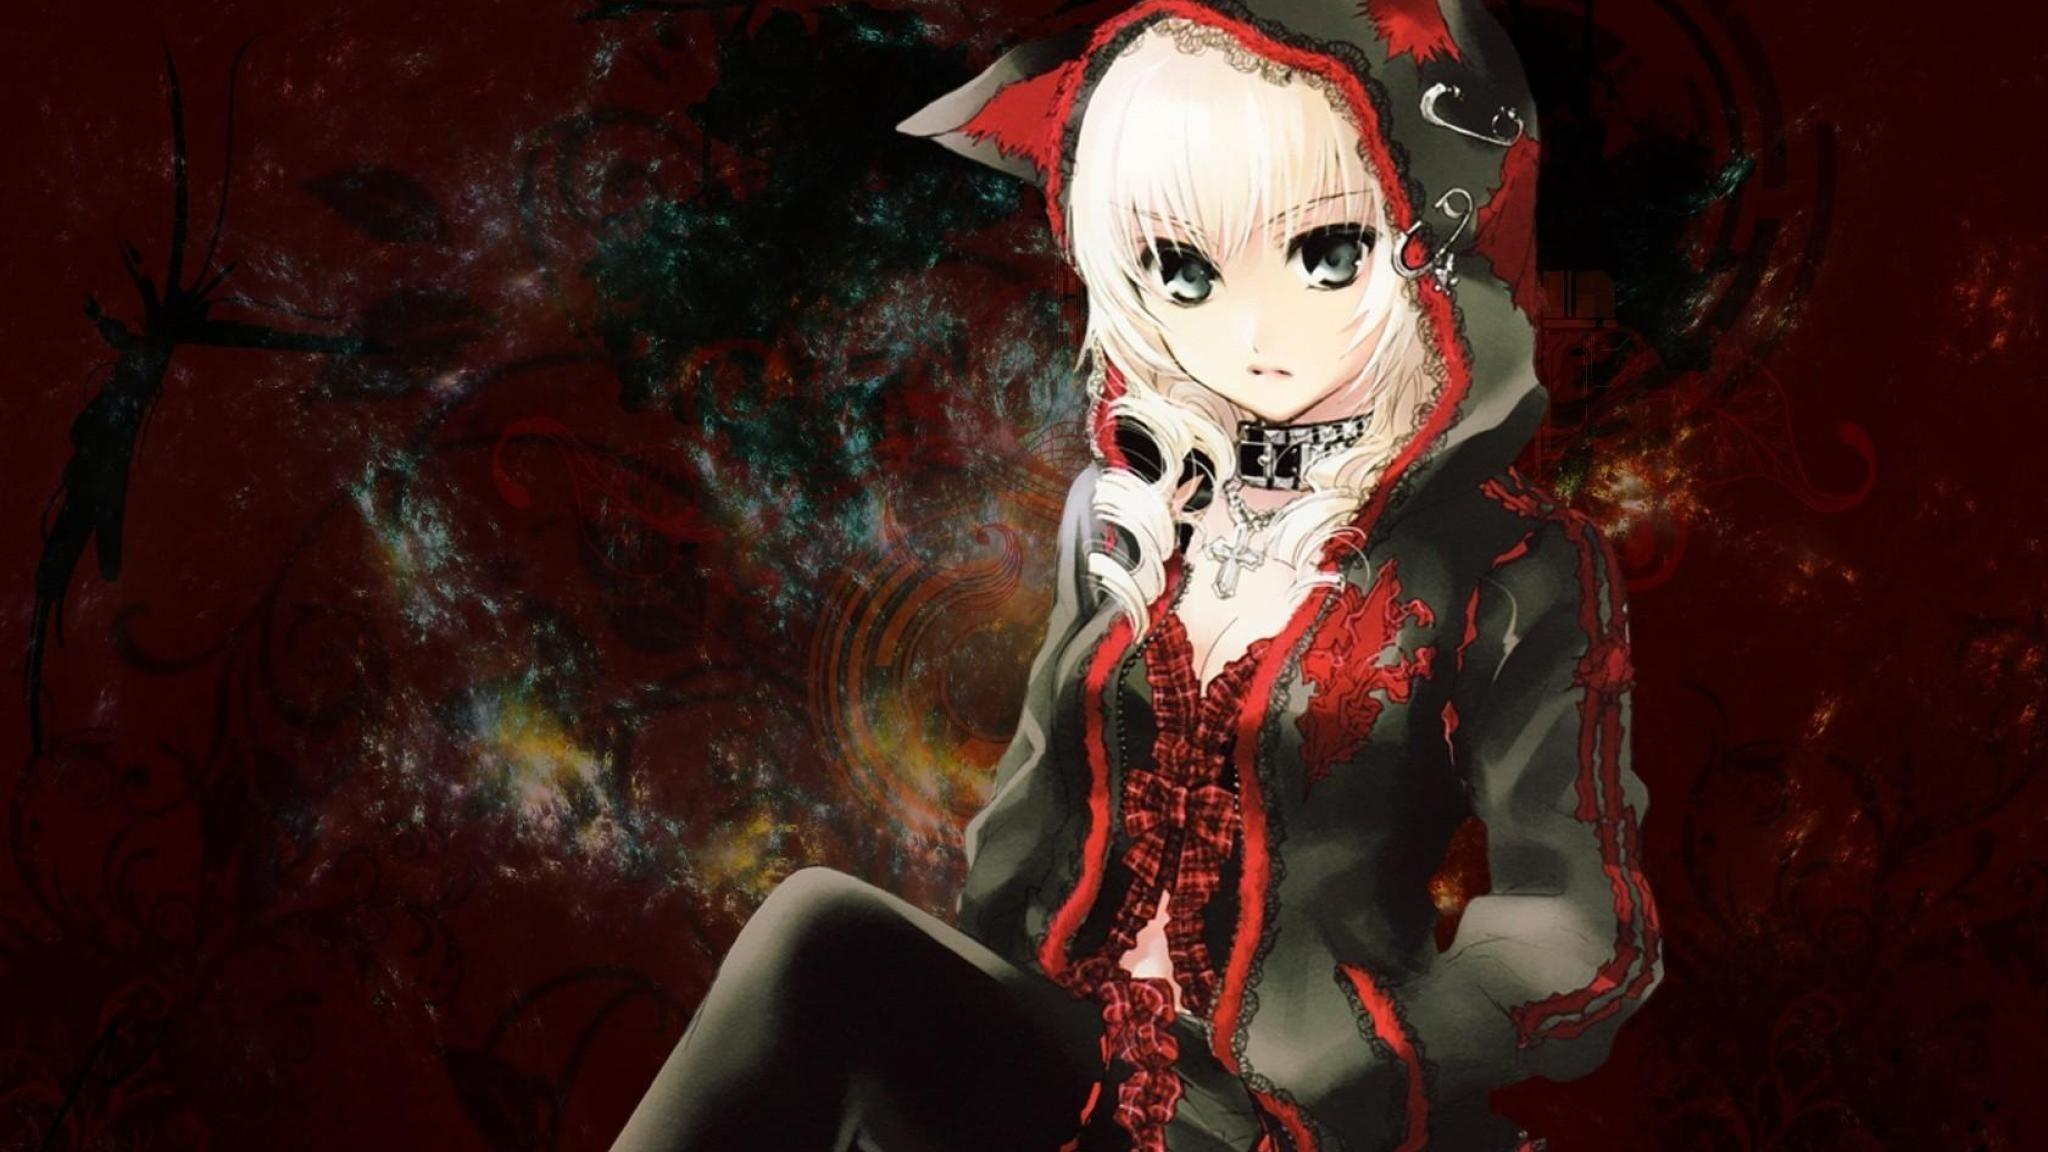 Cute But Creepy Anime Girl Wallpapers - Wallpaper Cave